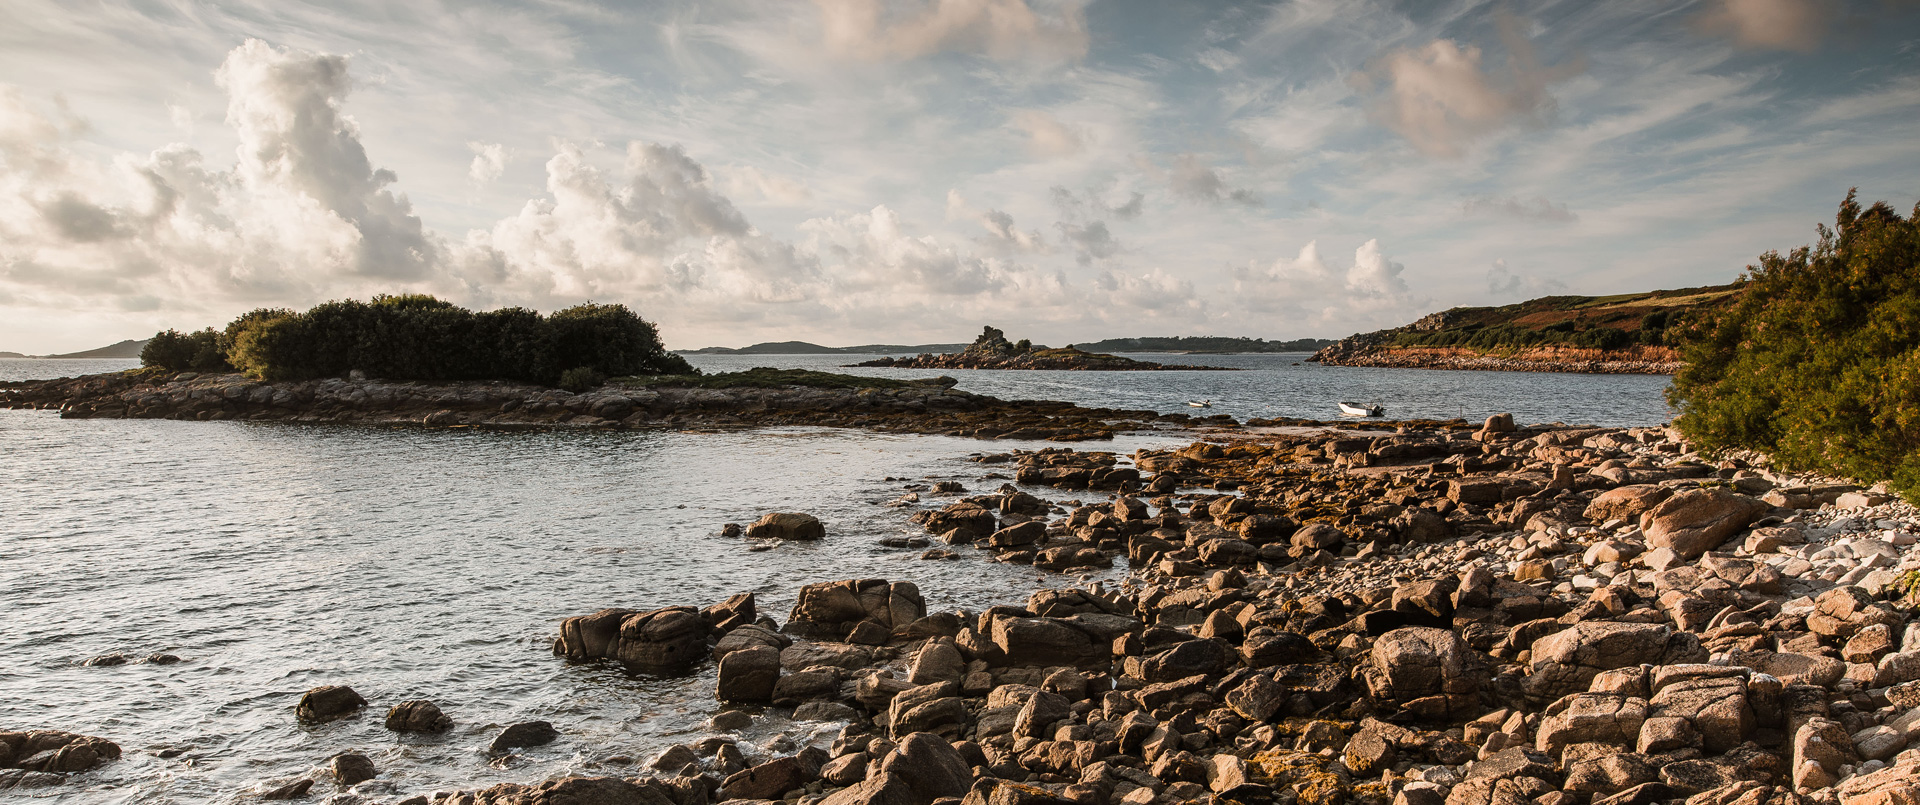 St. Mary's, Isles of Scilly in Autumn